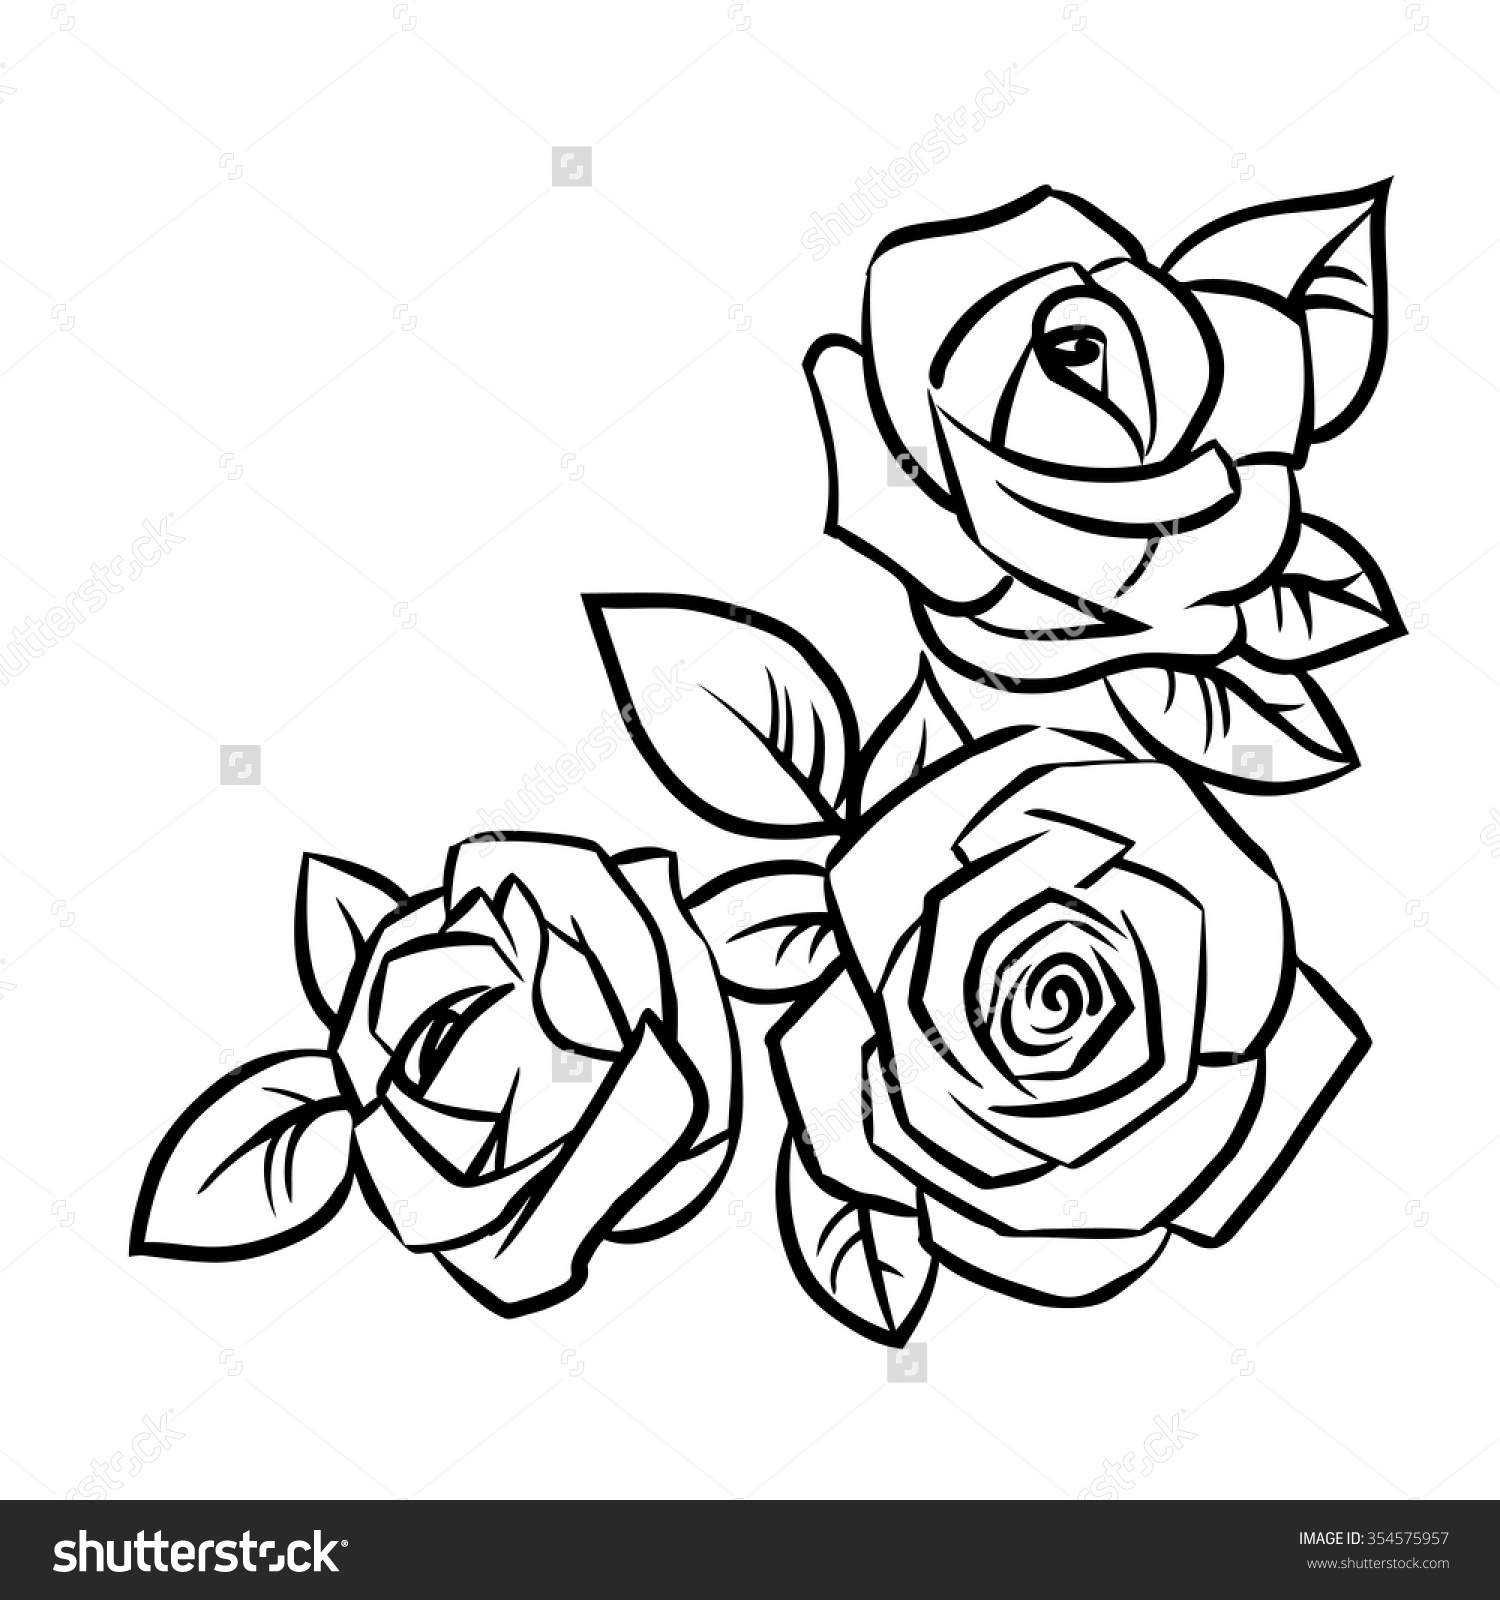 1500x1600 Simple Rose Outline Drawing